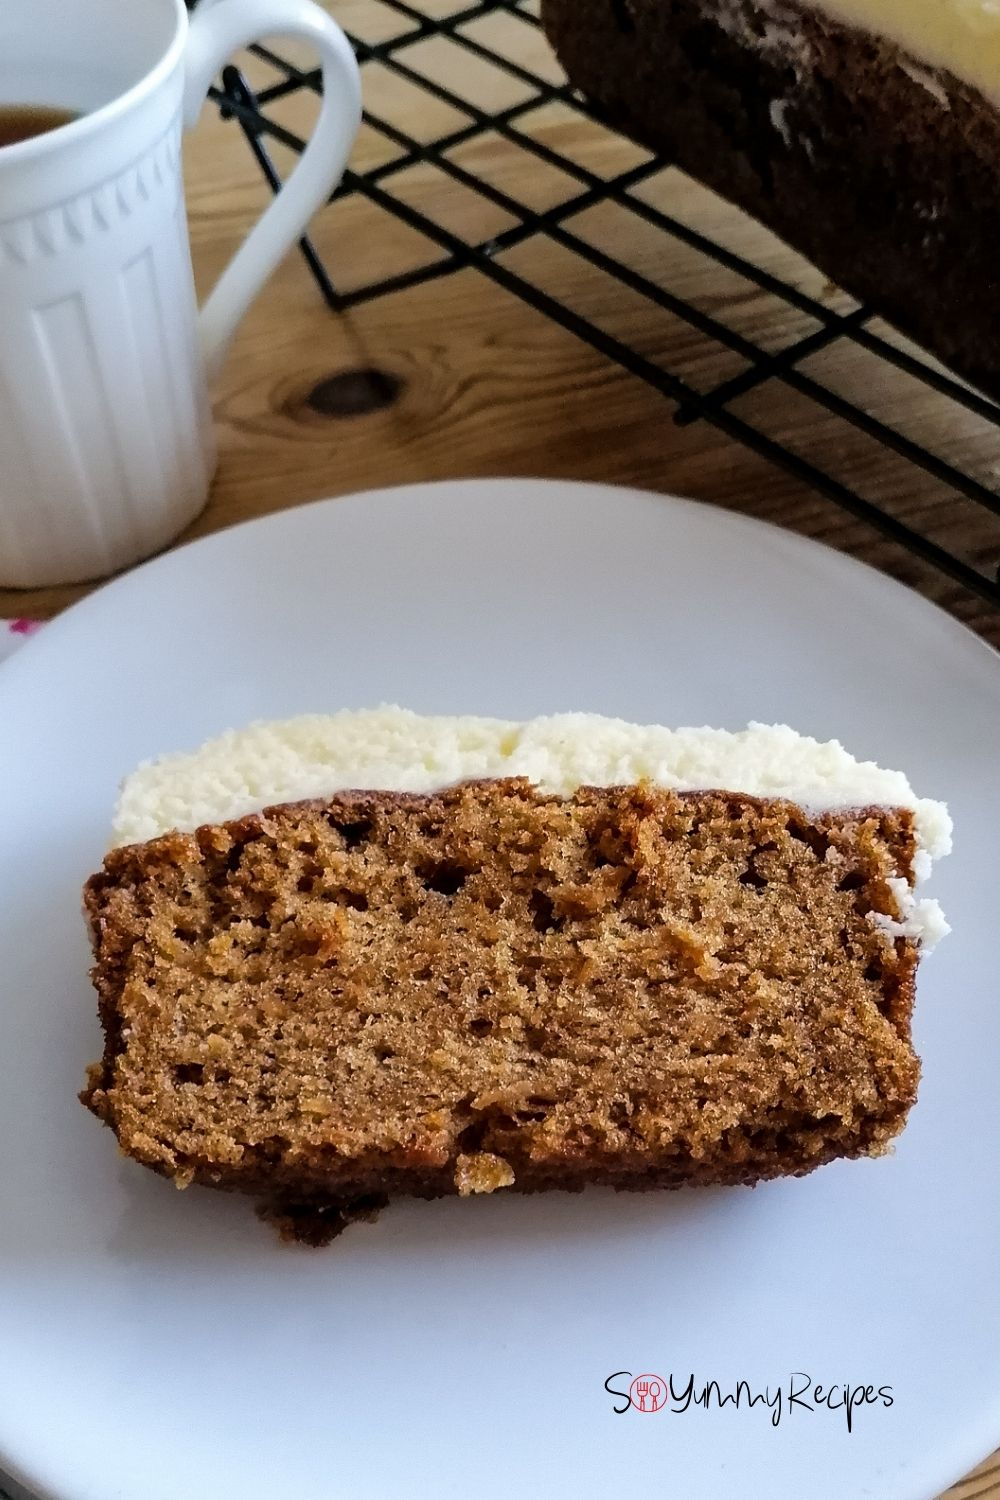 a slice of carrot cake on a white plate with a white mug on the side